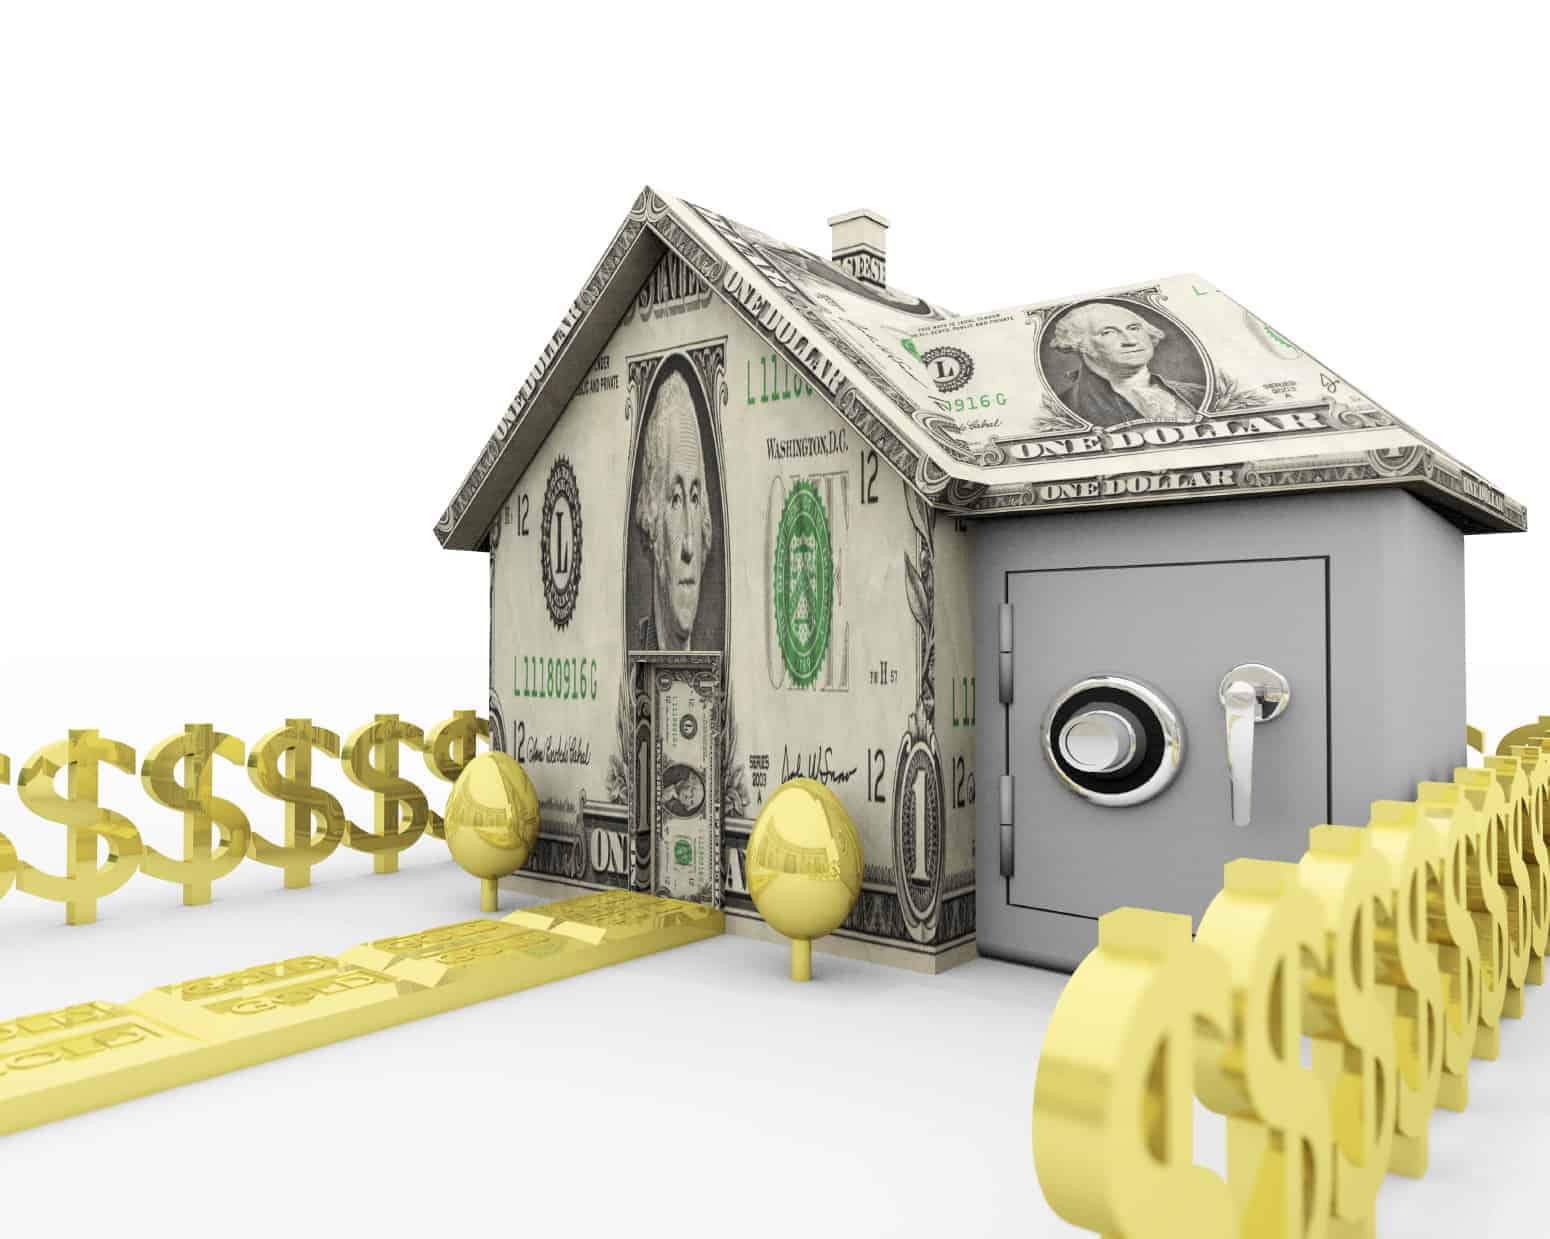 Home equity is the monetary value locked up in your home